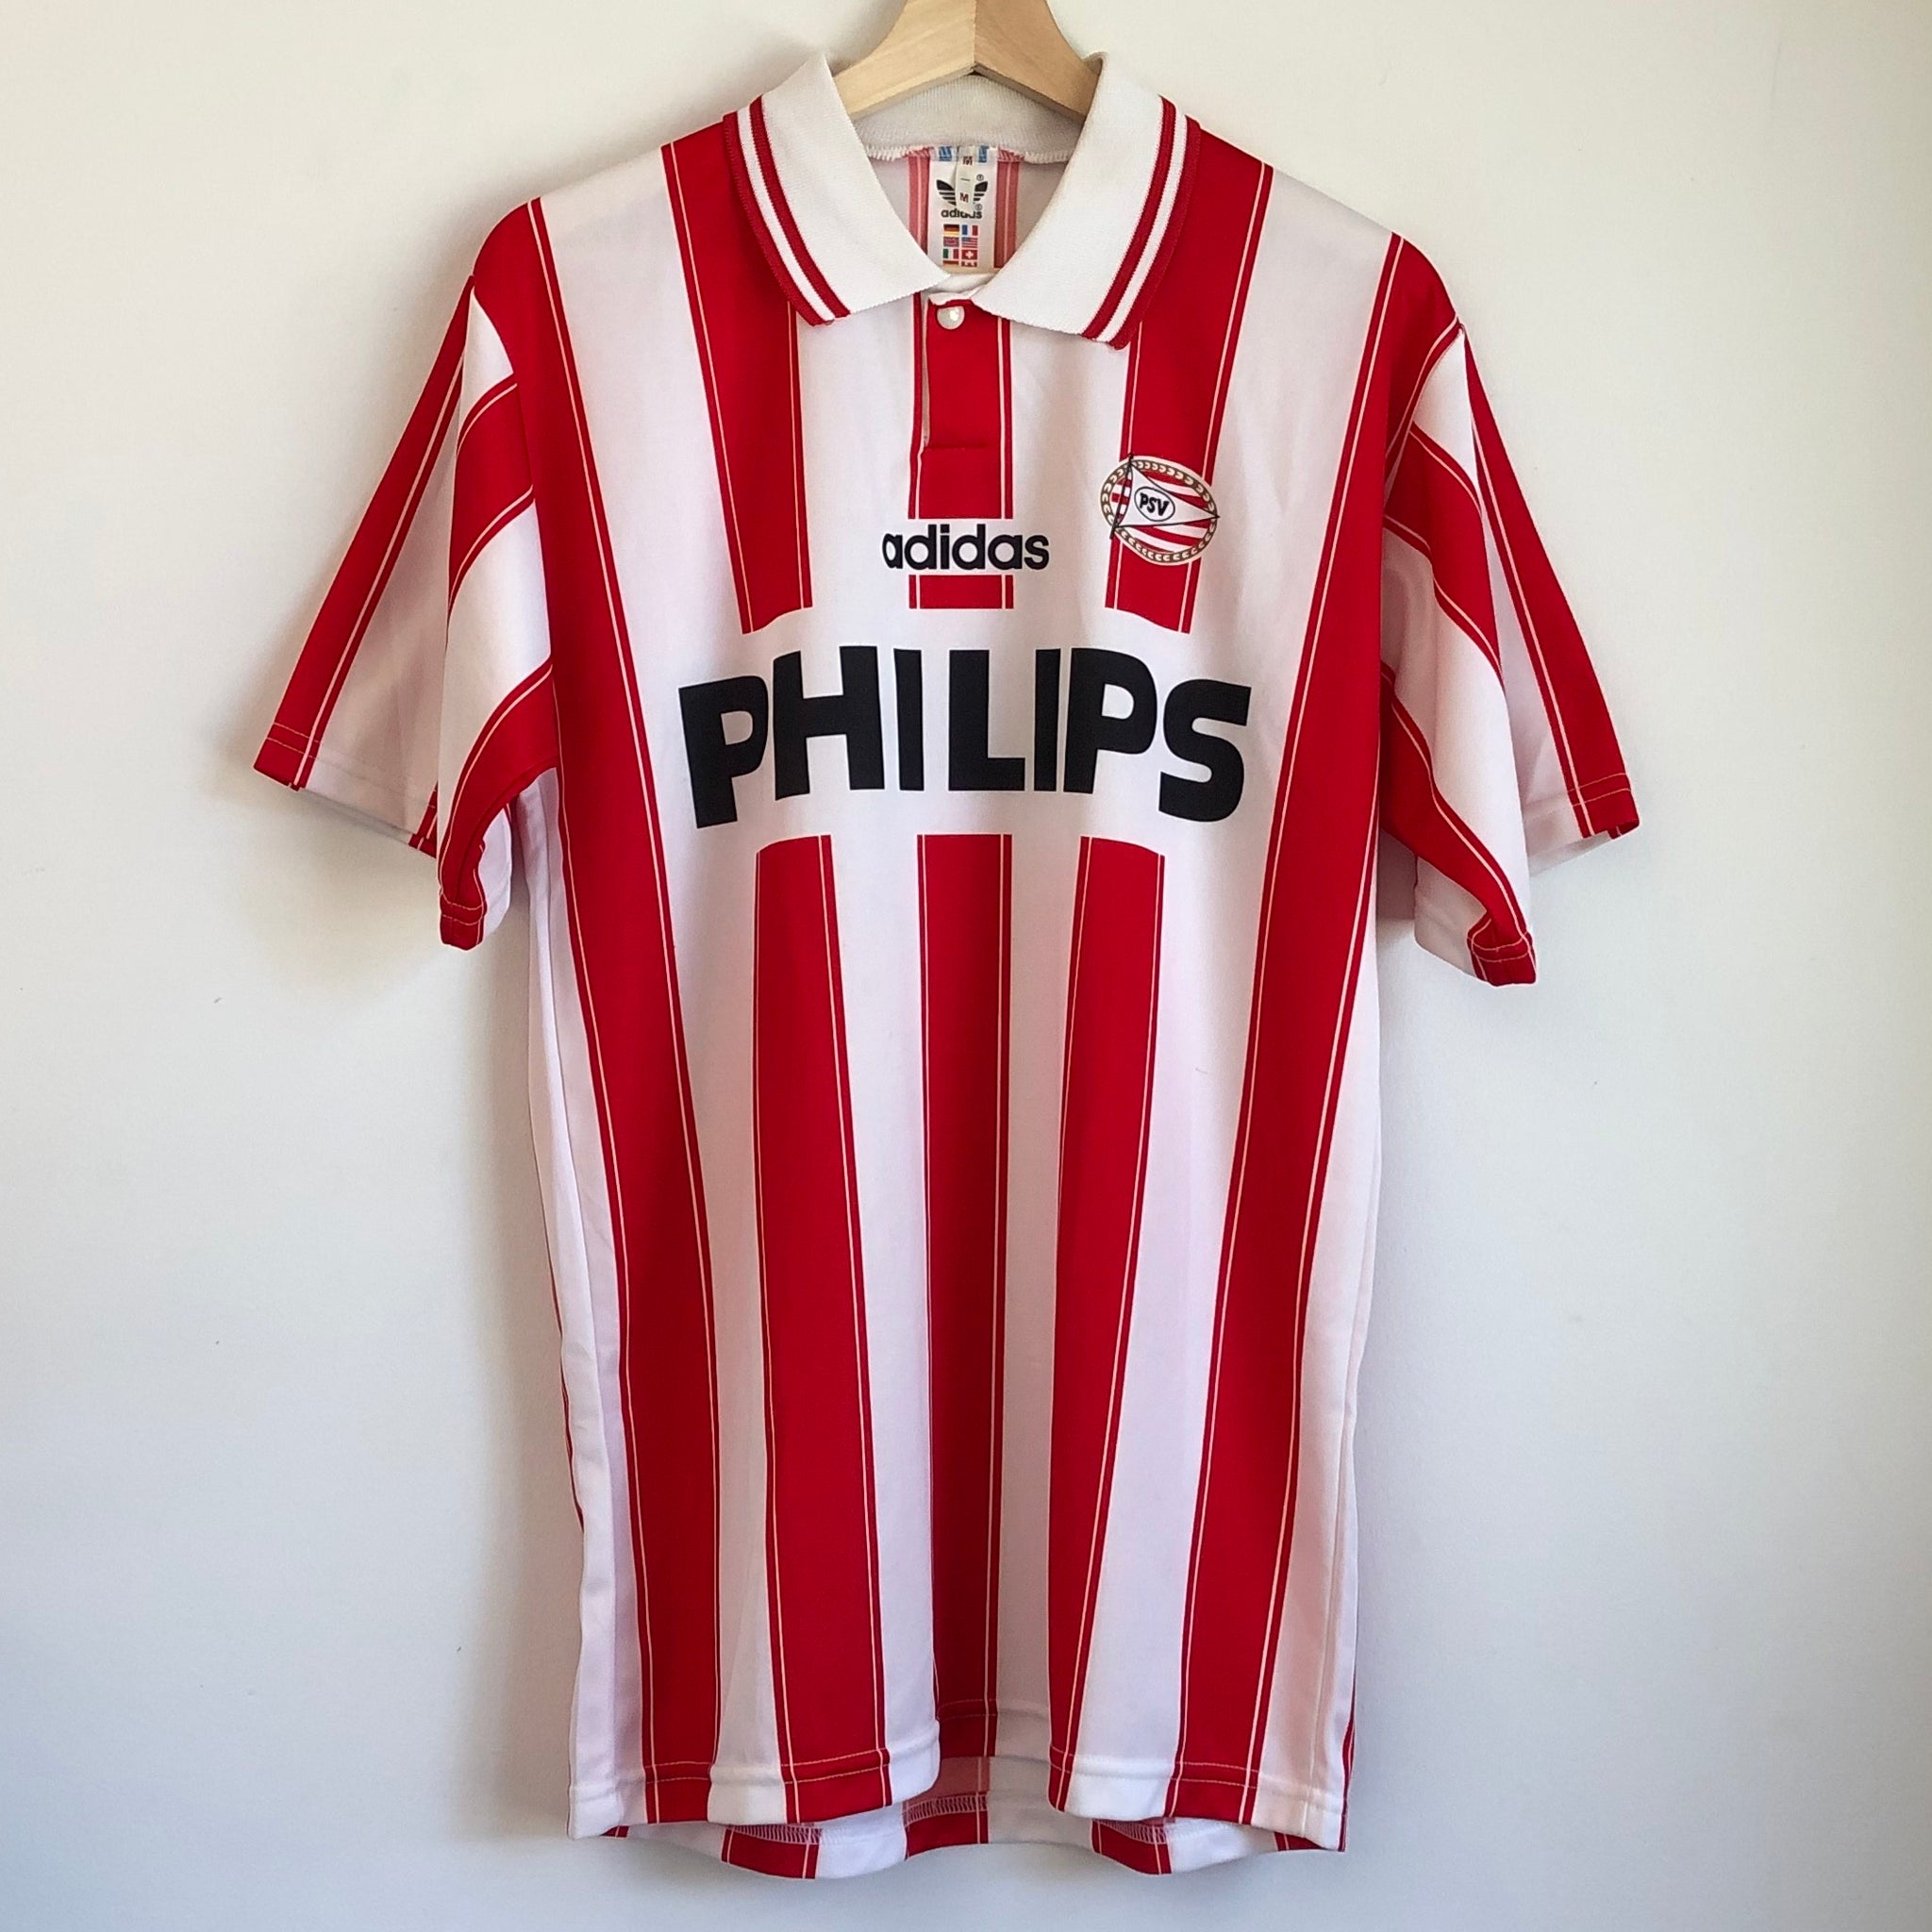 adidas PSV Eindhoven 1994/95 Home Soccer Jersey